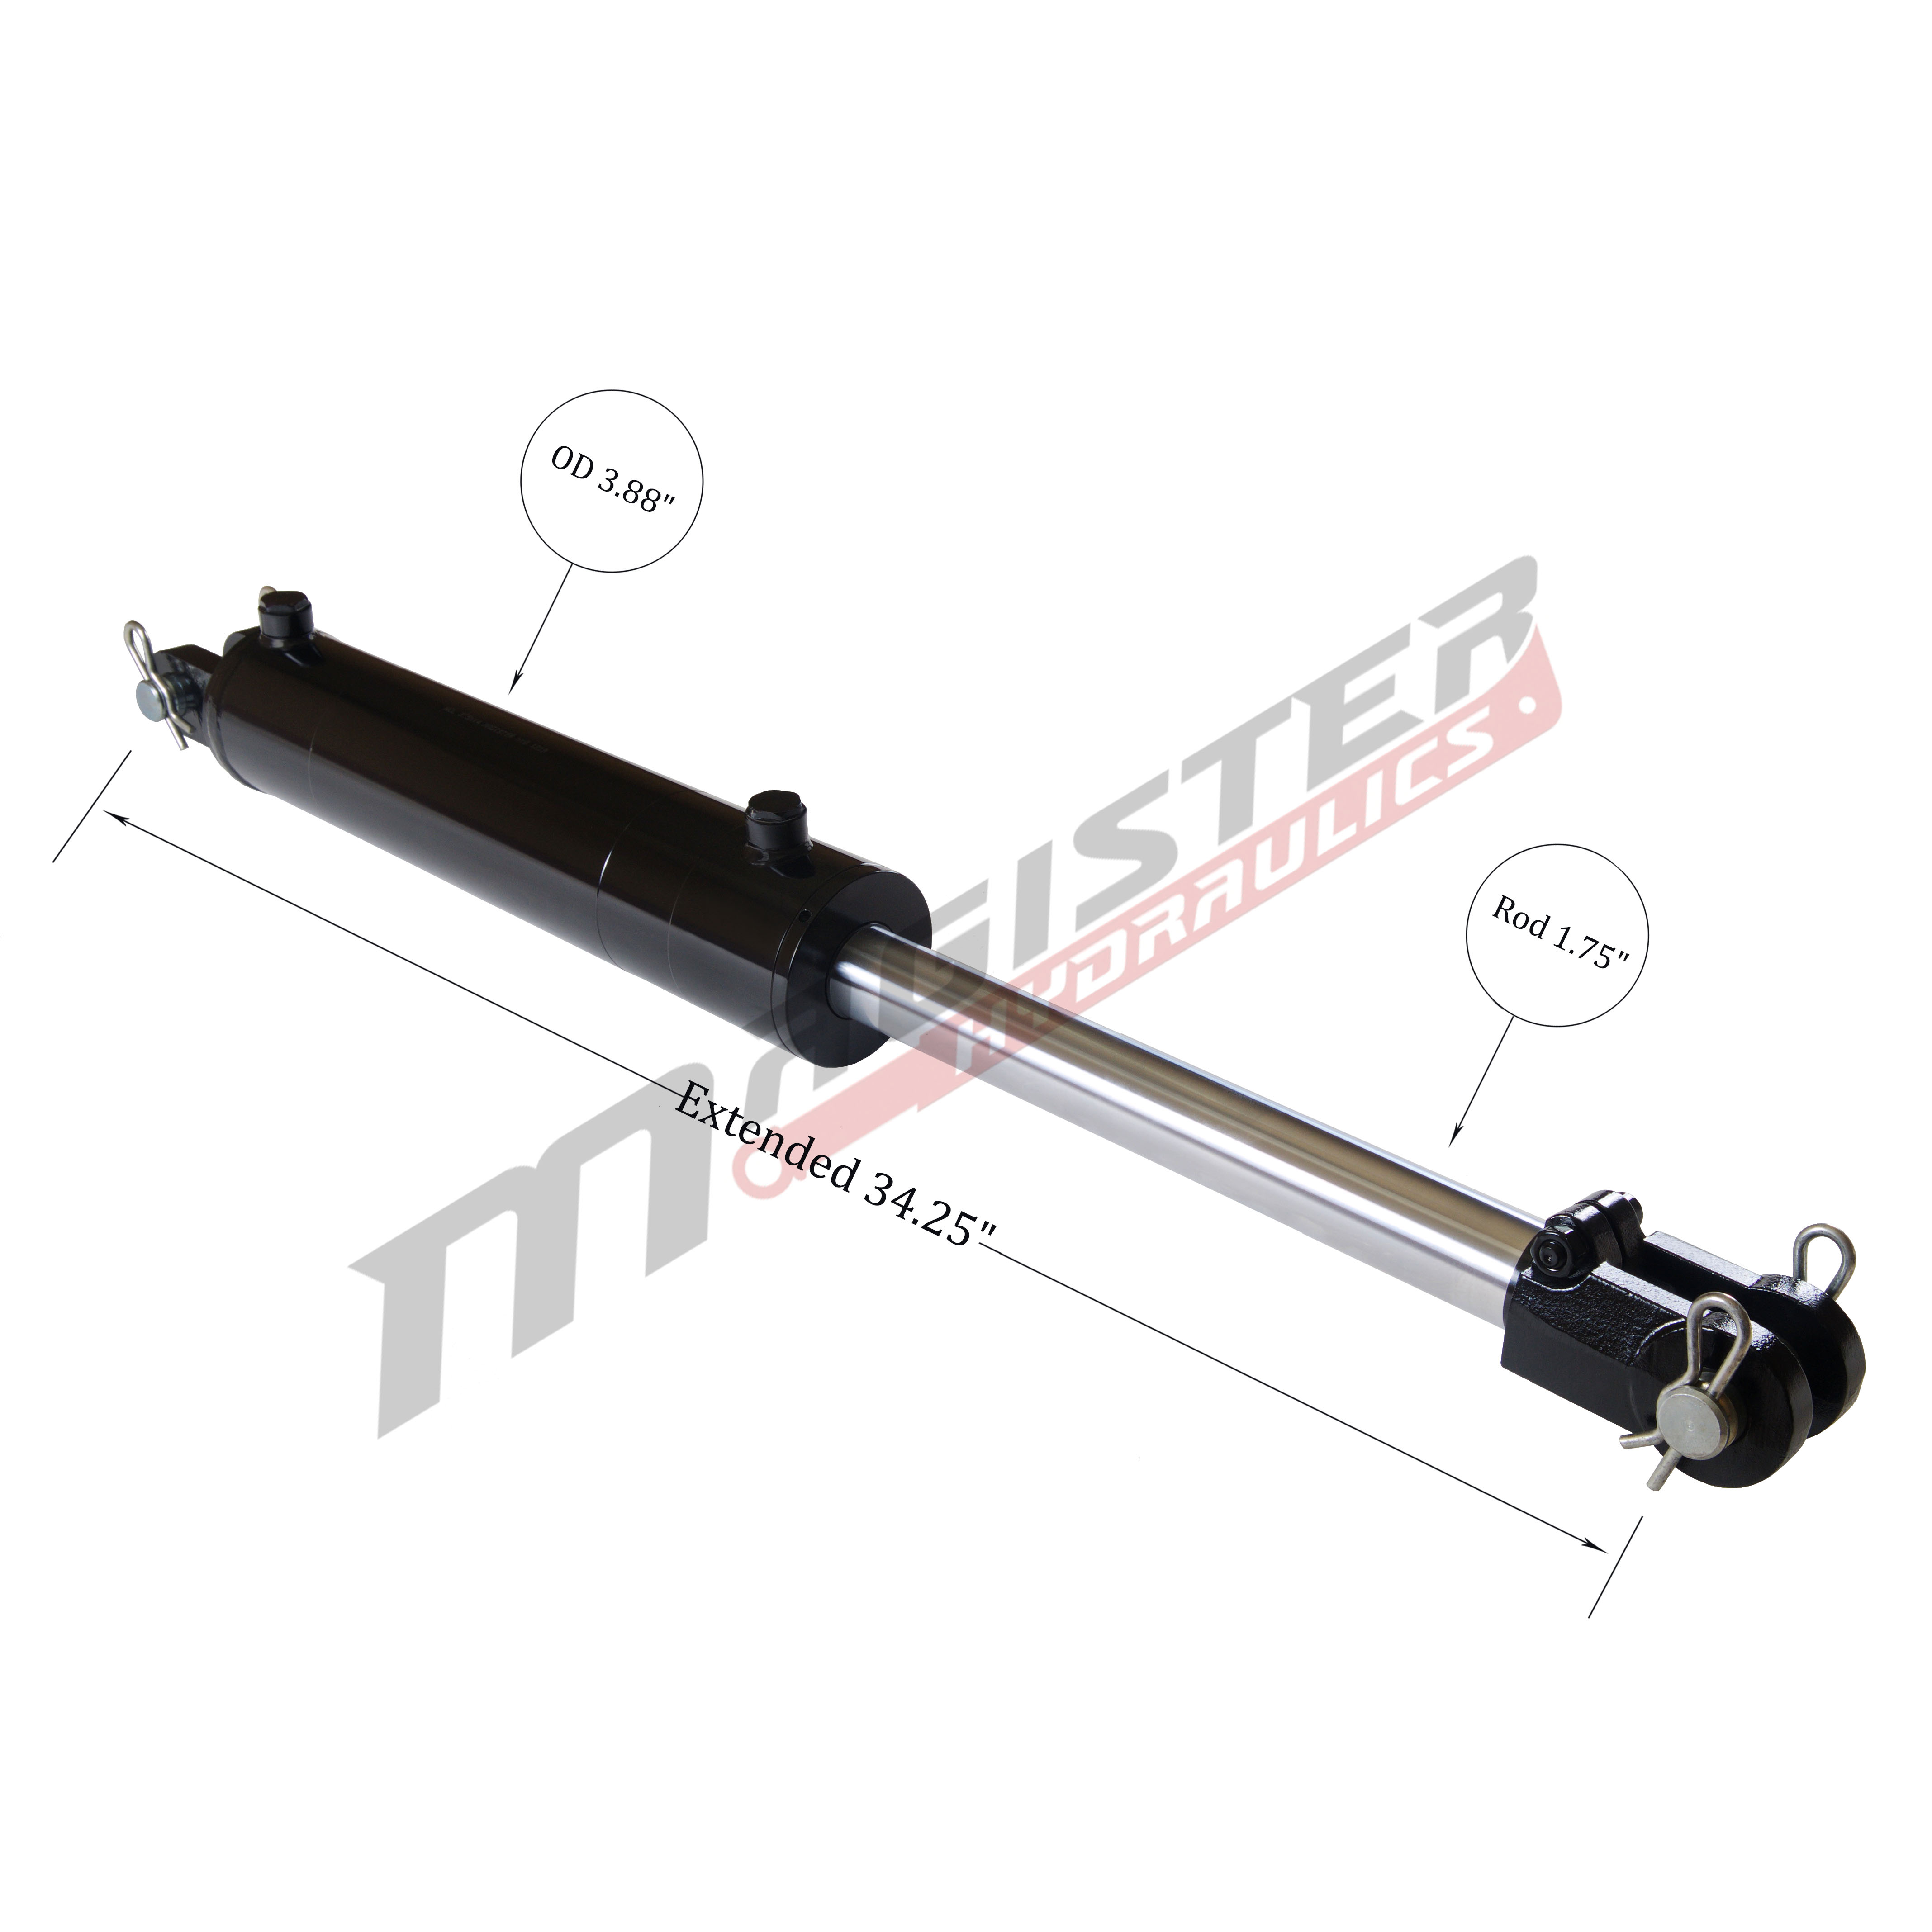 3.5 bore x 12 stroke hydraulic cylinder, welded clevis double acting cylinder | Magister Hydraulics